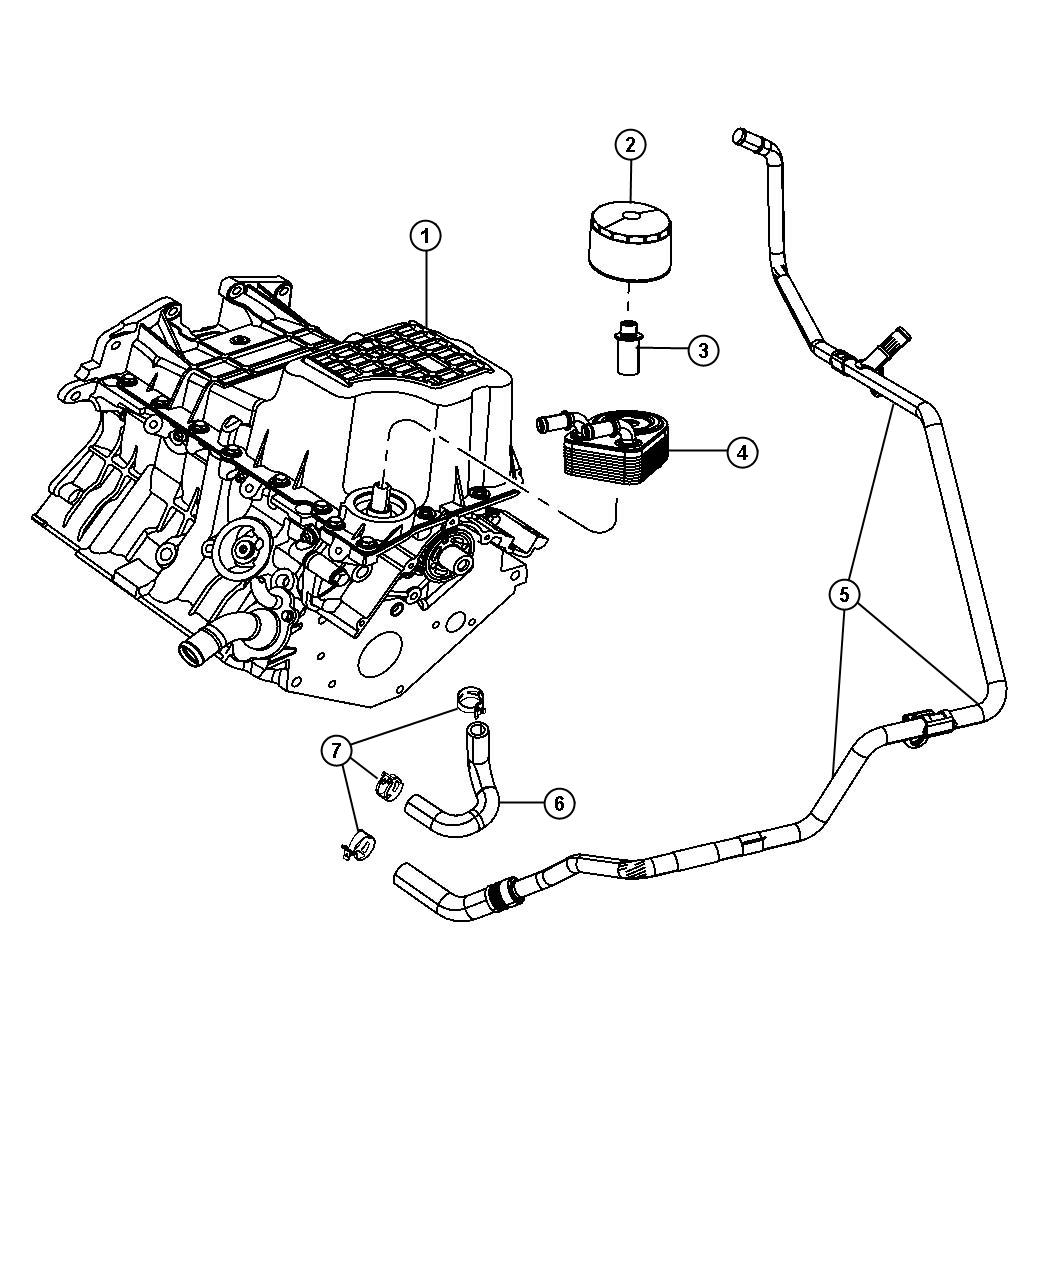 chrysler concorde engine diagram chrysler free engine With chrysler lhs engine diagram also dodge grand caravan engine diagram as